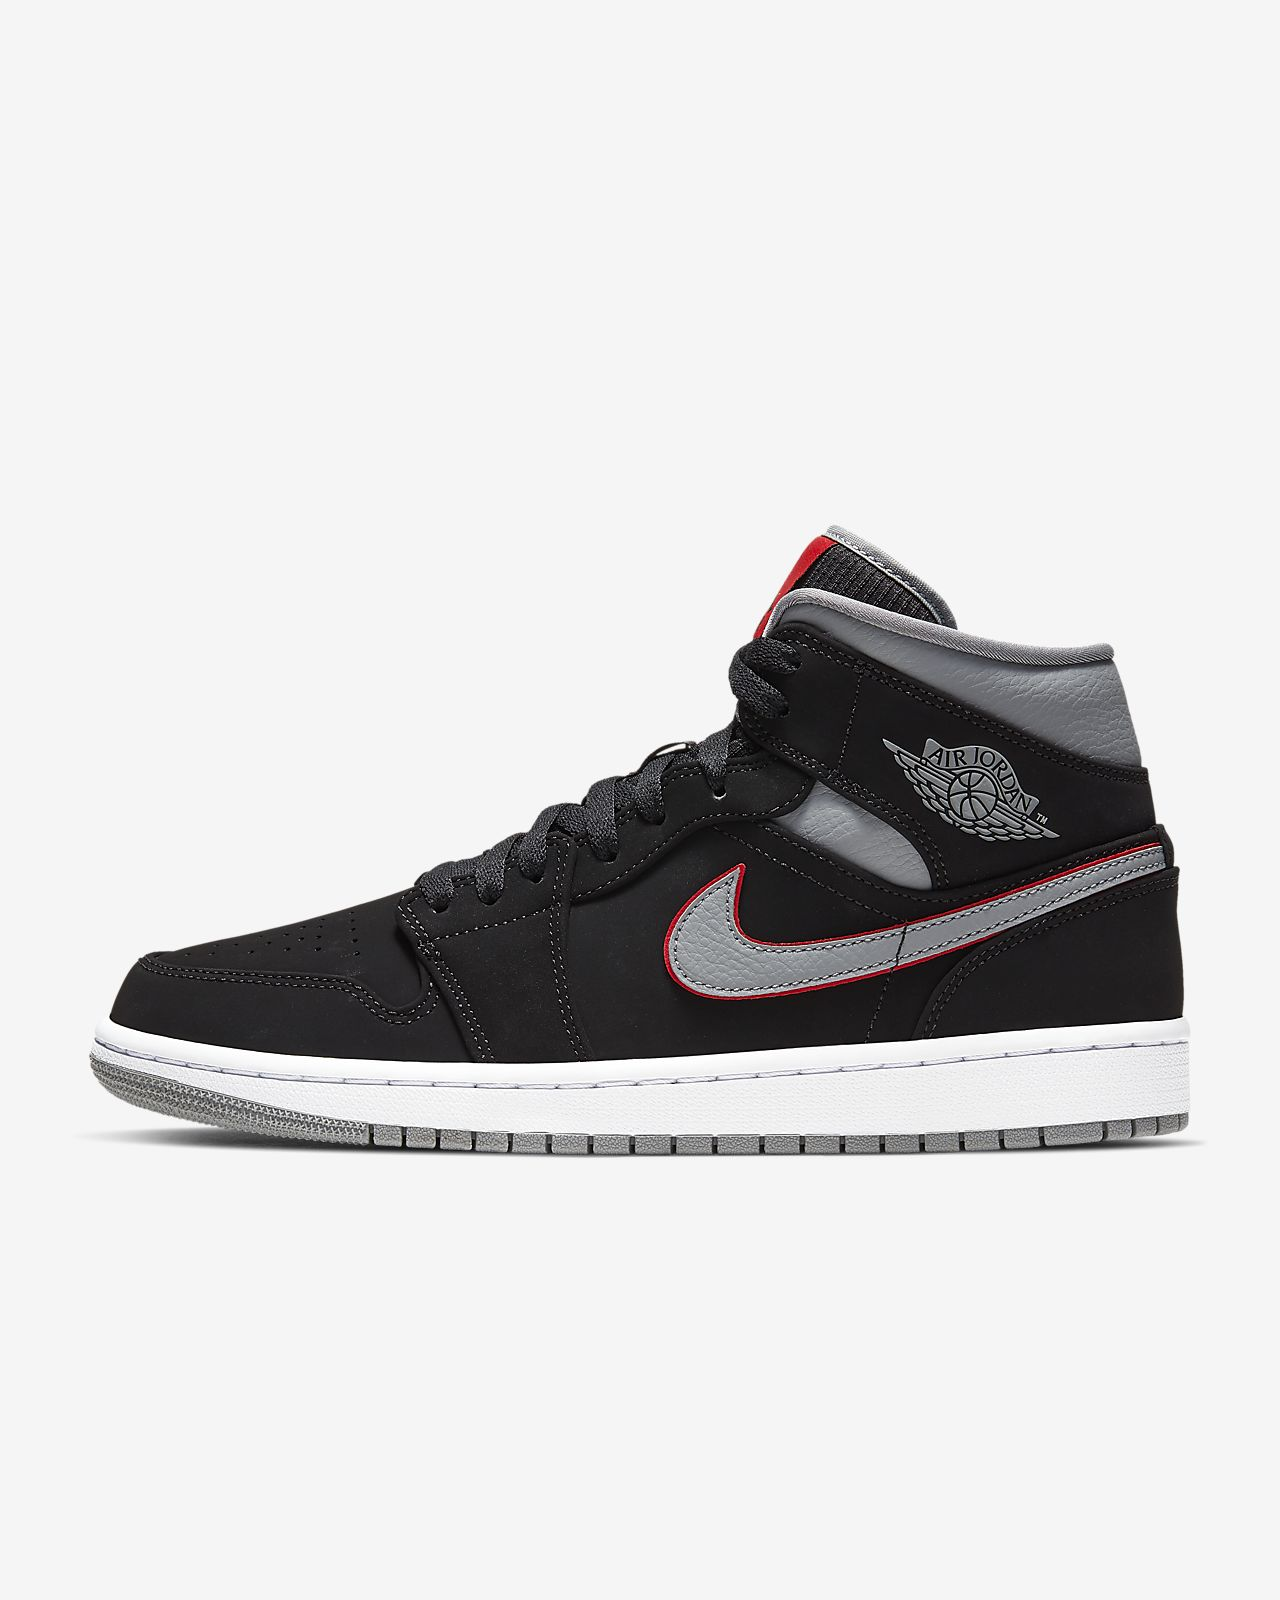 on sale e72c9 d13aa Men s Shoe. Air Jordan 1 Mid